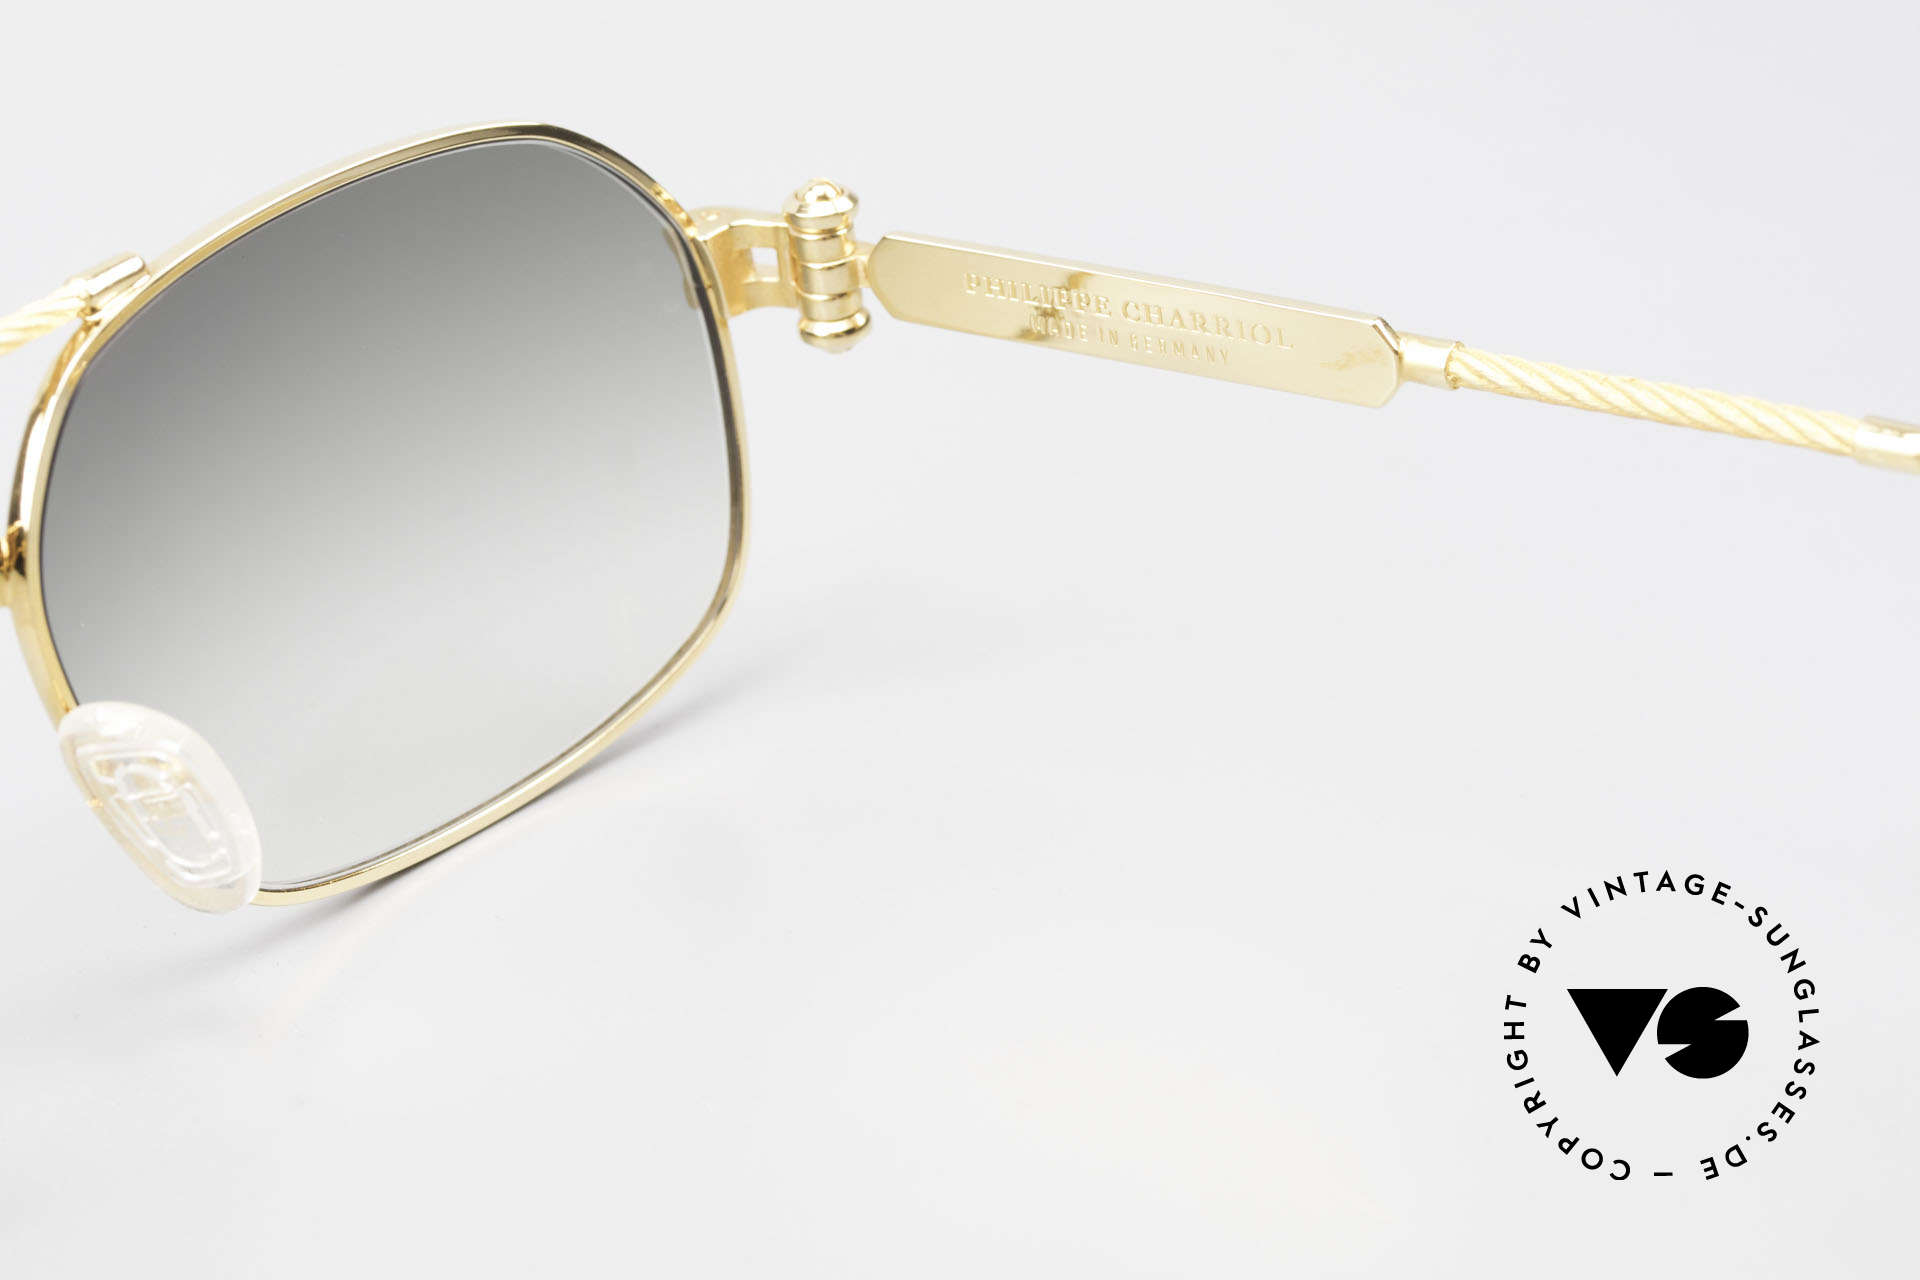 Philippe Charriol 90PP Insider 80's Luxury Sunglasses, Size: large, Made for Men